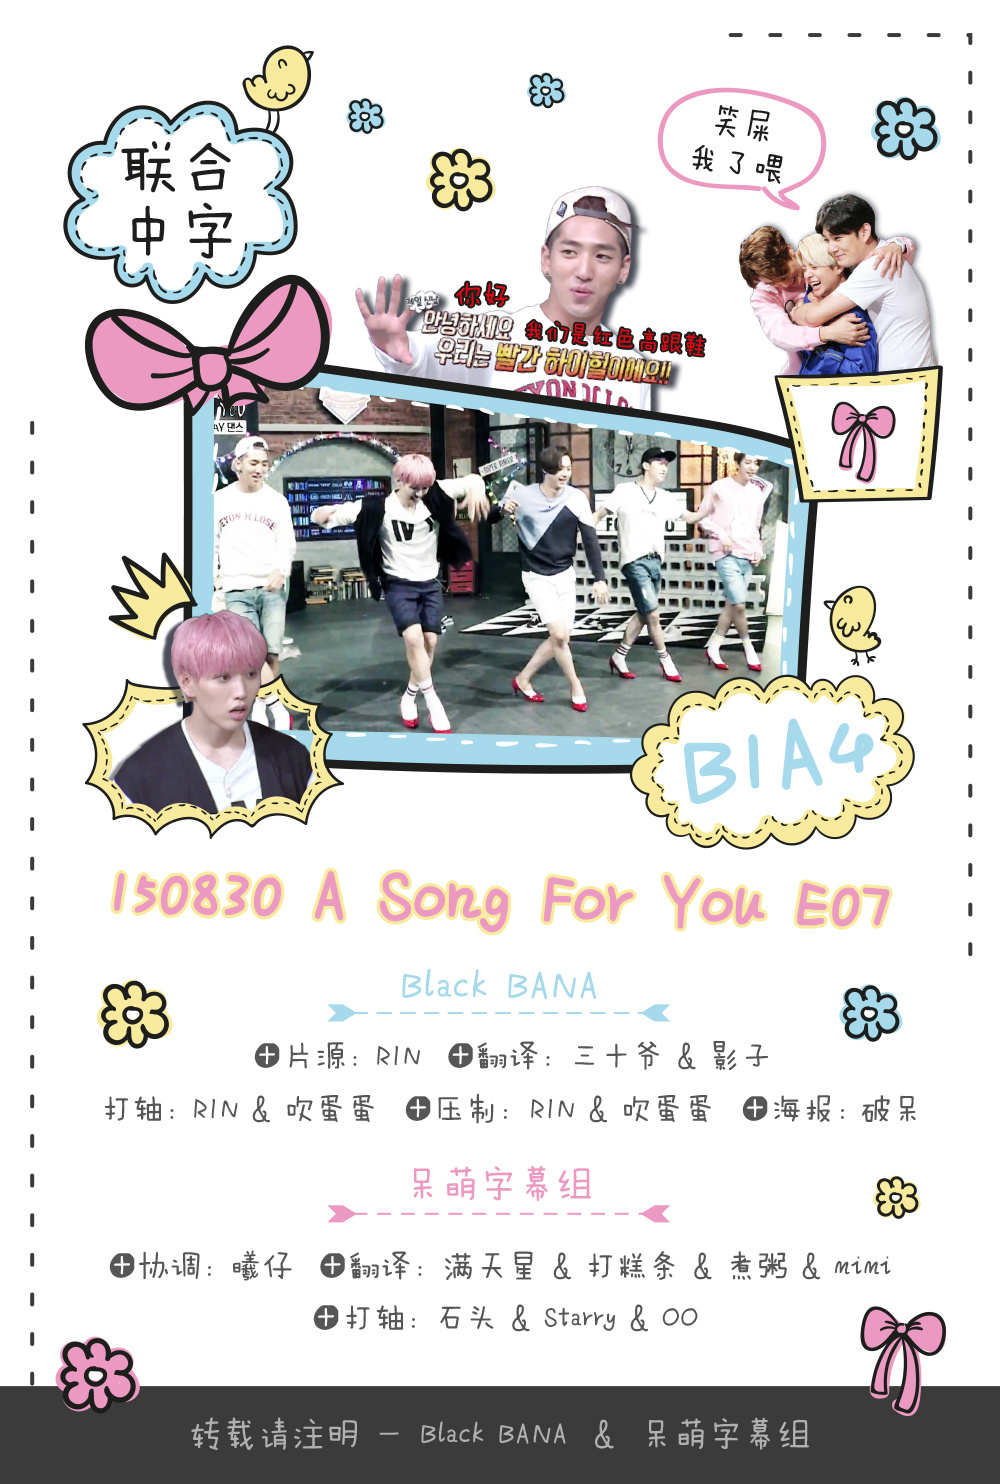 150830 A Song For You 4 E07 B1A4 中字